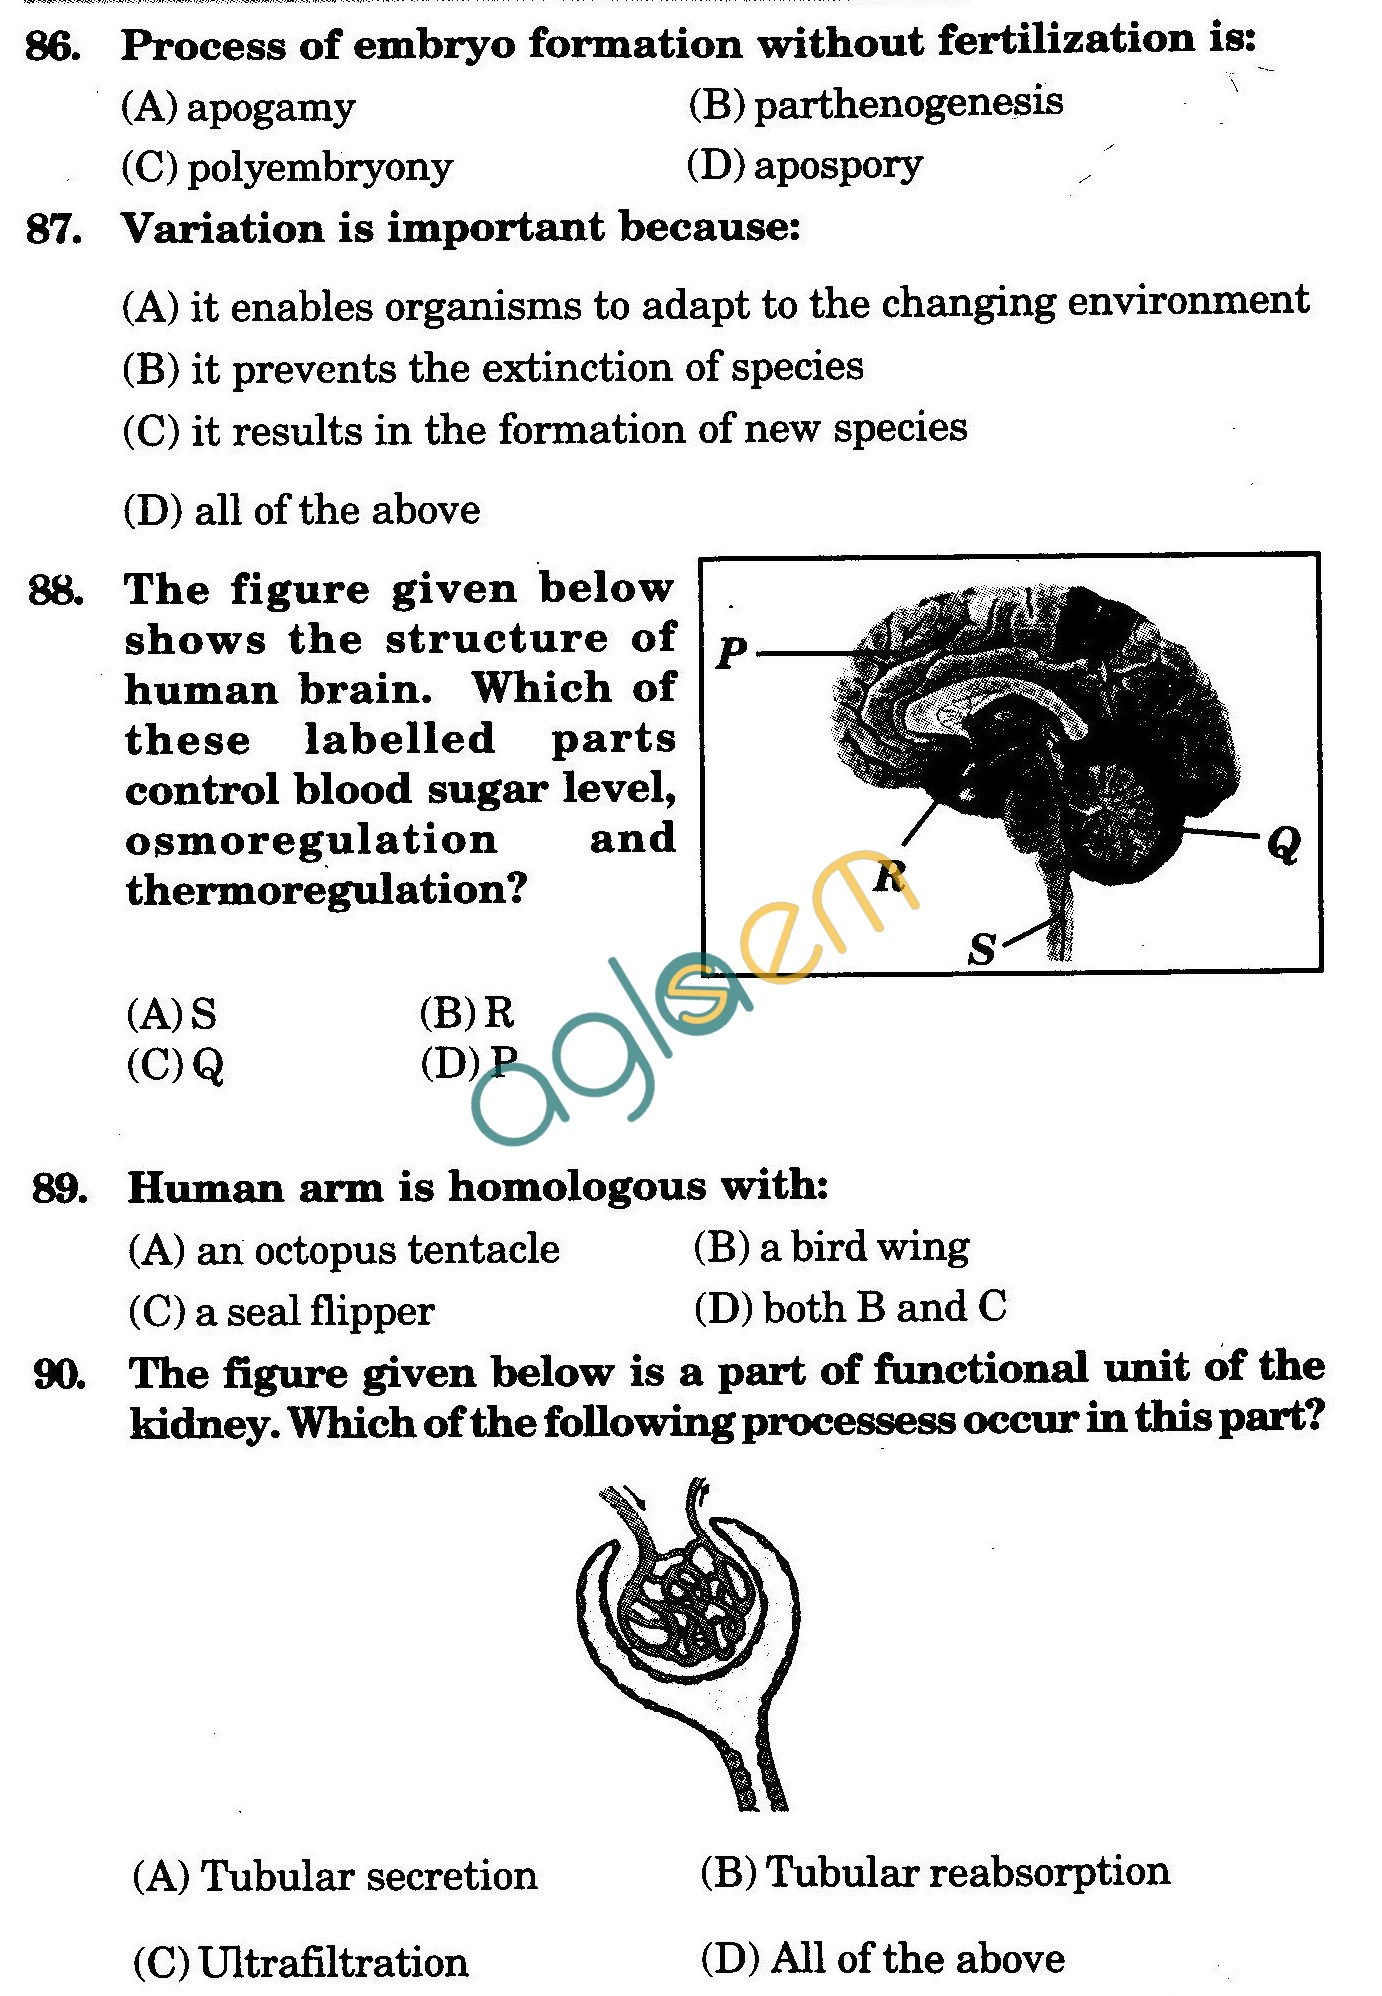 NSTSE 2009 Class X Question Paper with Answers - Biology